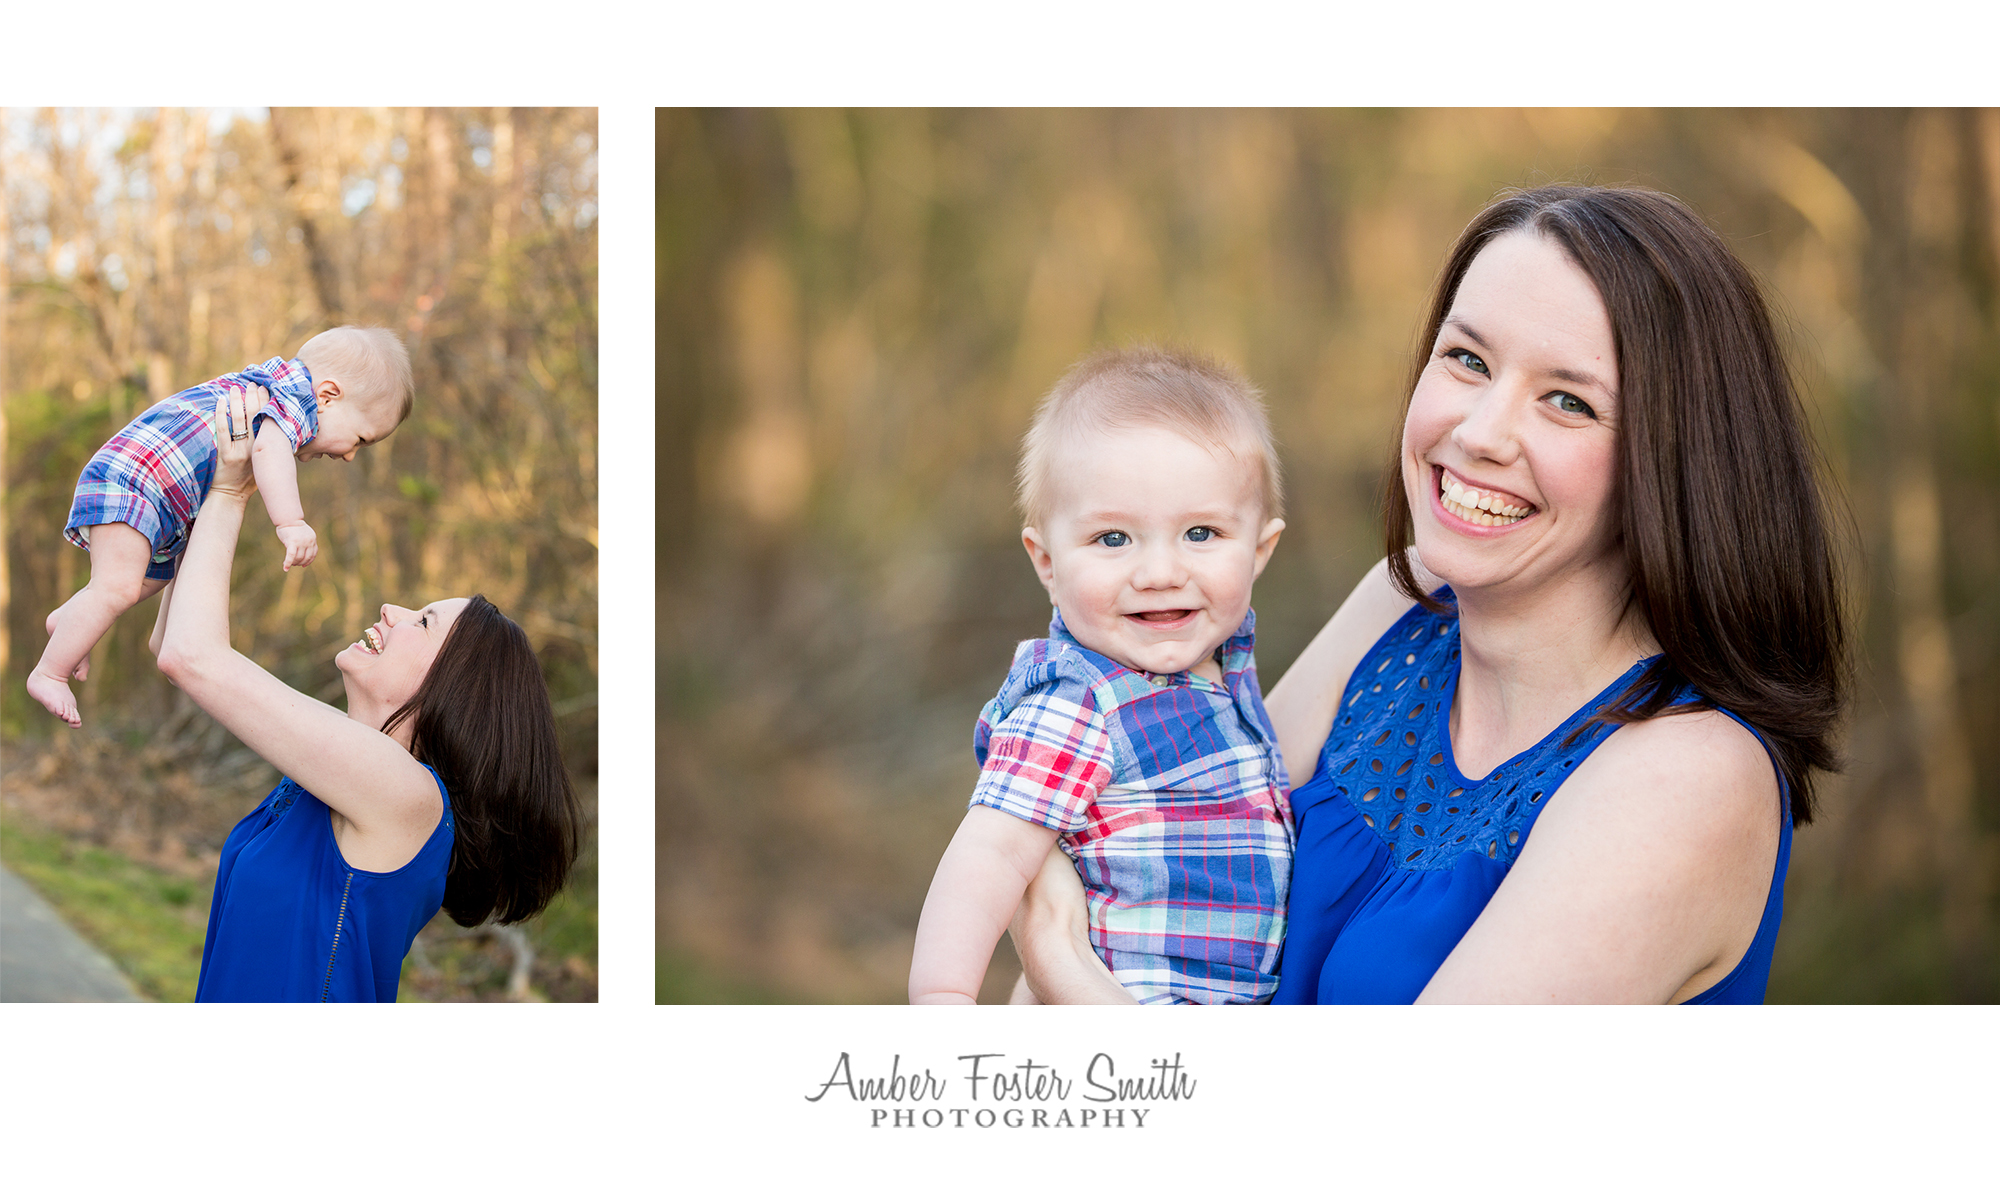 Amber Foster Smith Photography - Family Photography in Holly Springs